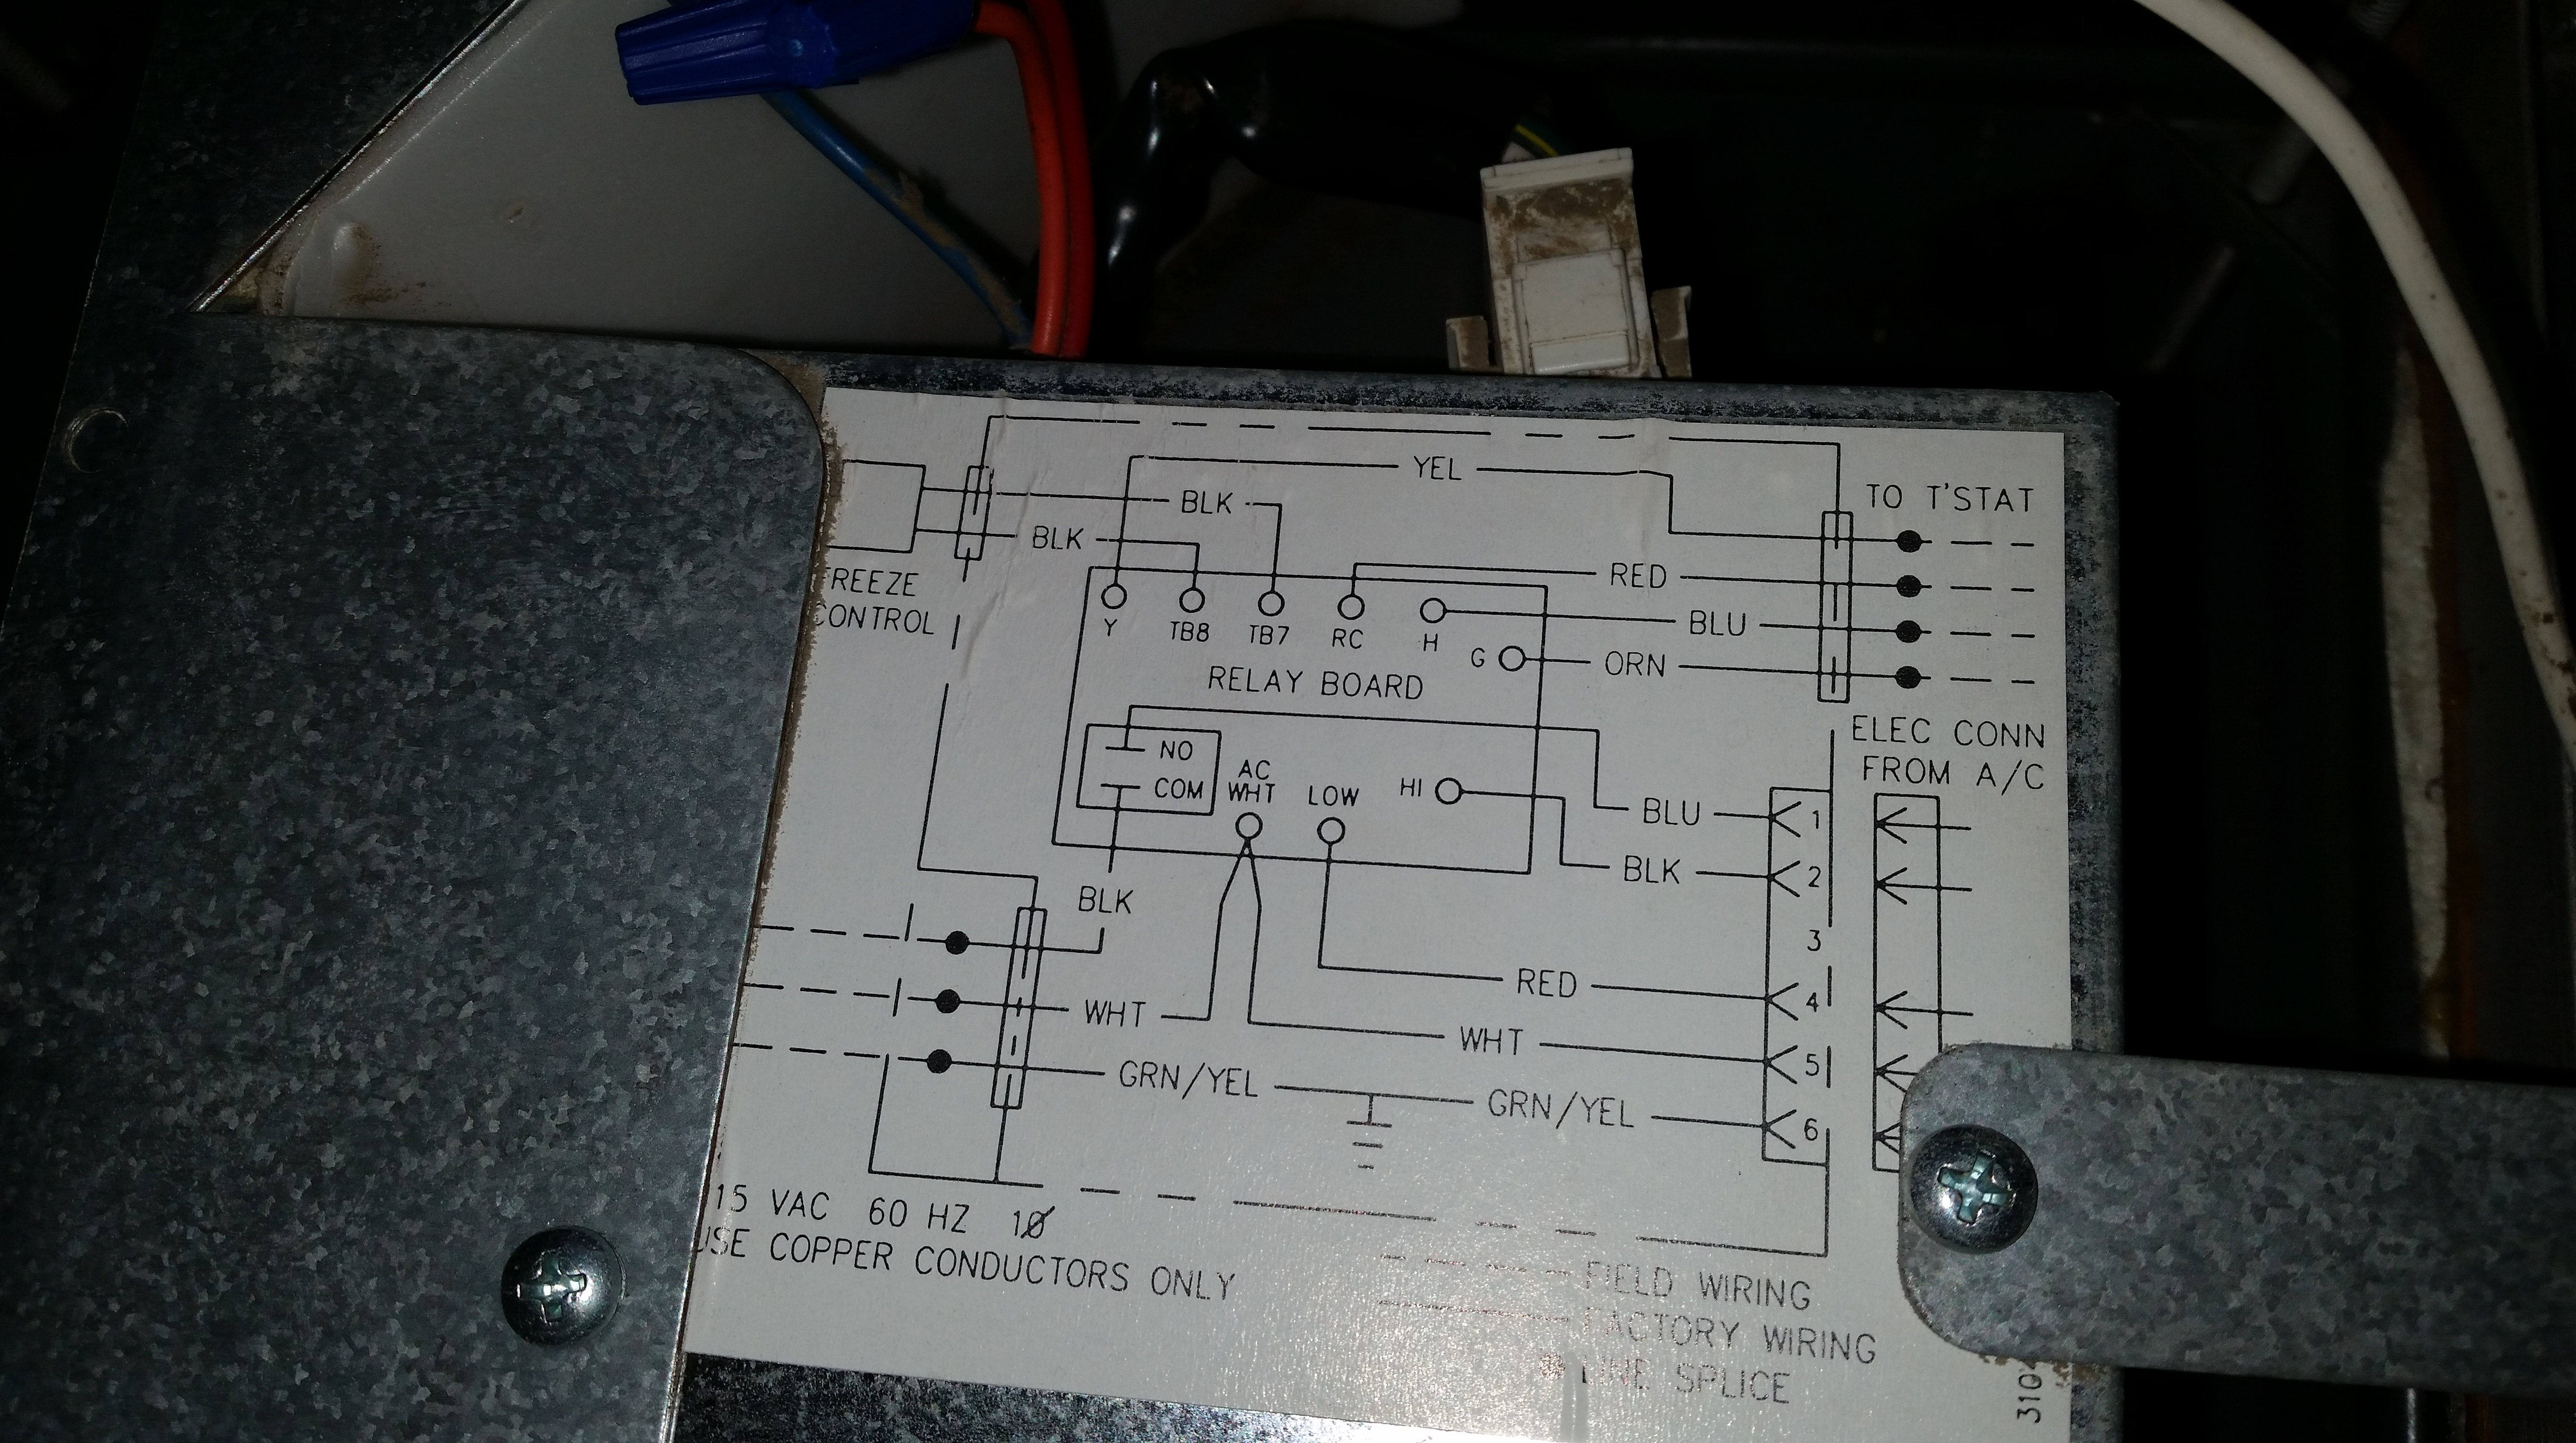 Duo therm 57915 wiring diagram new wiring diagram 2018 can you advise me on replacing my rv thermostat what do you charge analog thermostat wiring diagram dometic duo therm parts list dometic air conditioner pooptronica